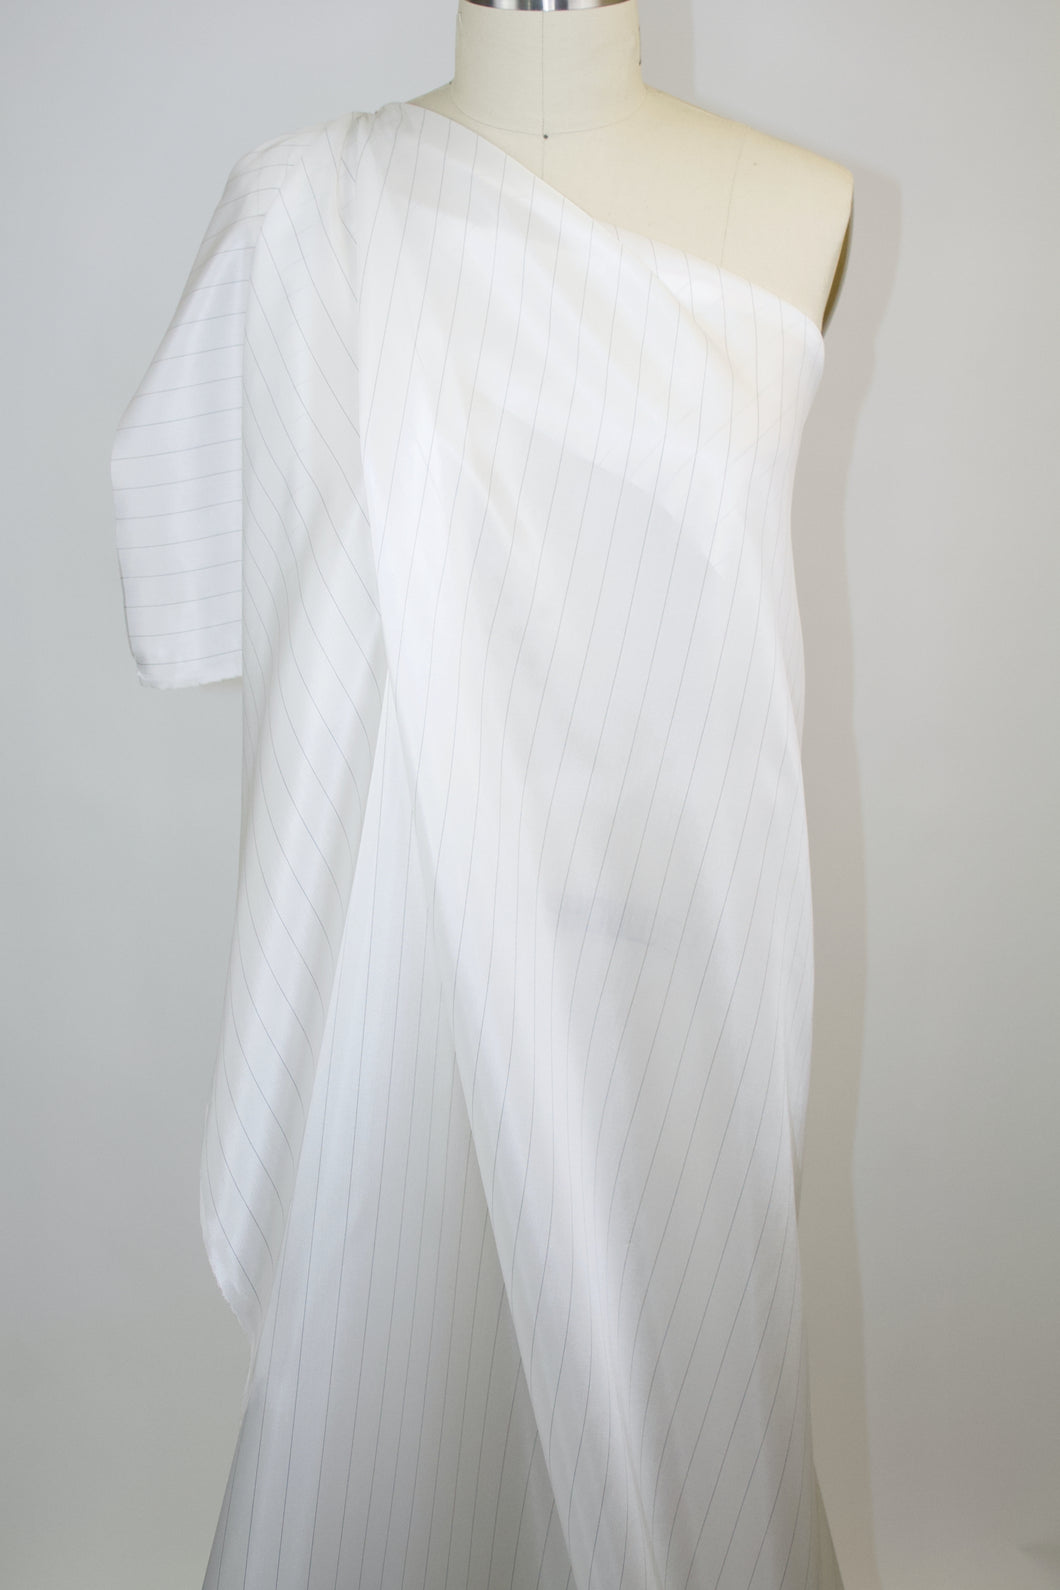 Japanese Pinstriped Bemberg Rayon Lining - Off-White/Black